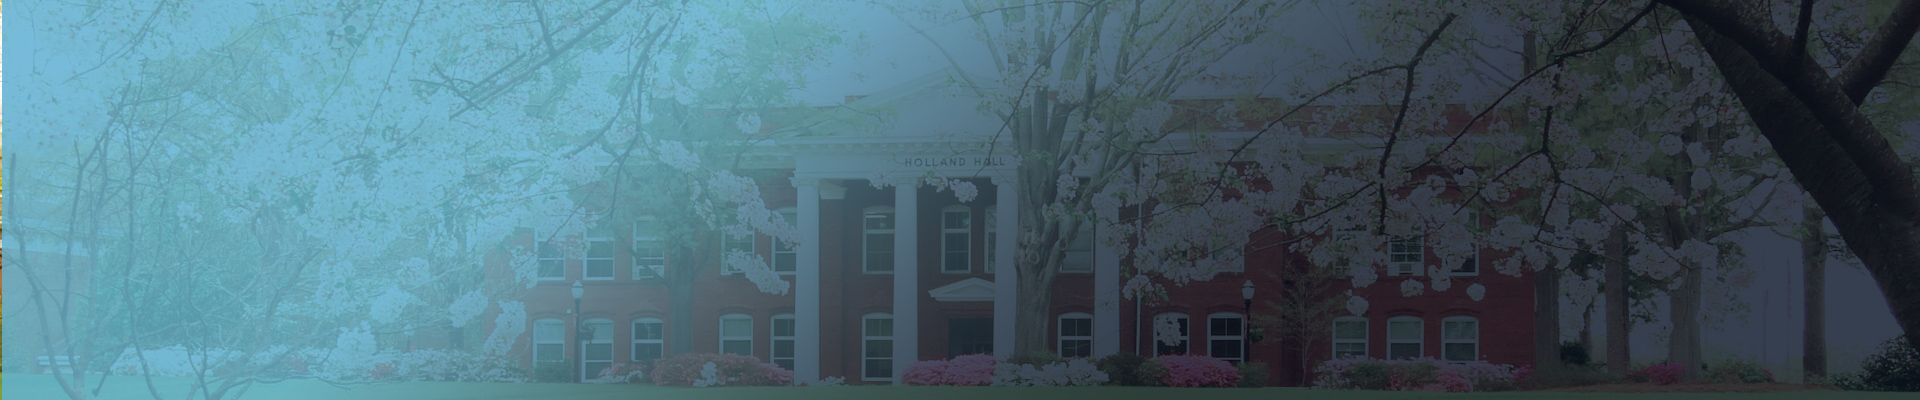 NewberryCollege-header.jpg